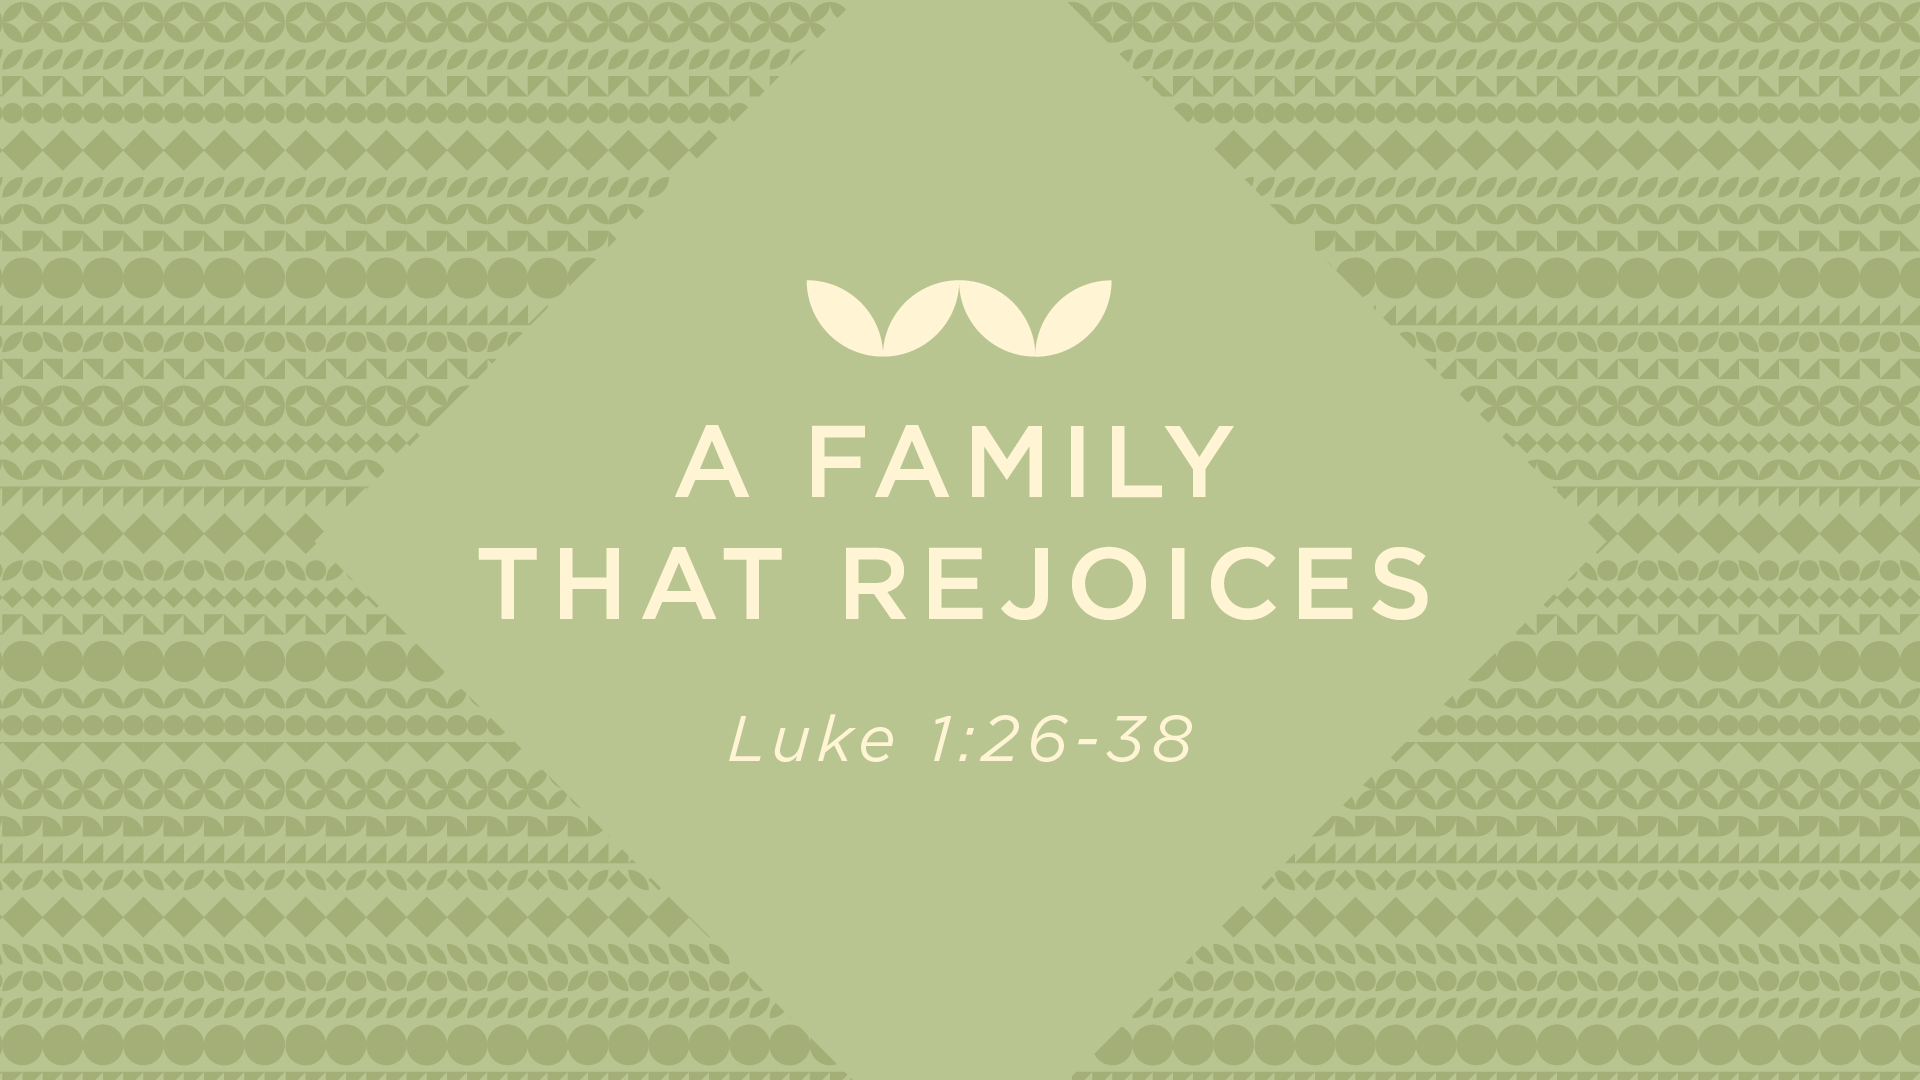 A Family That Rejoices